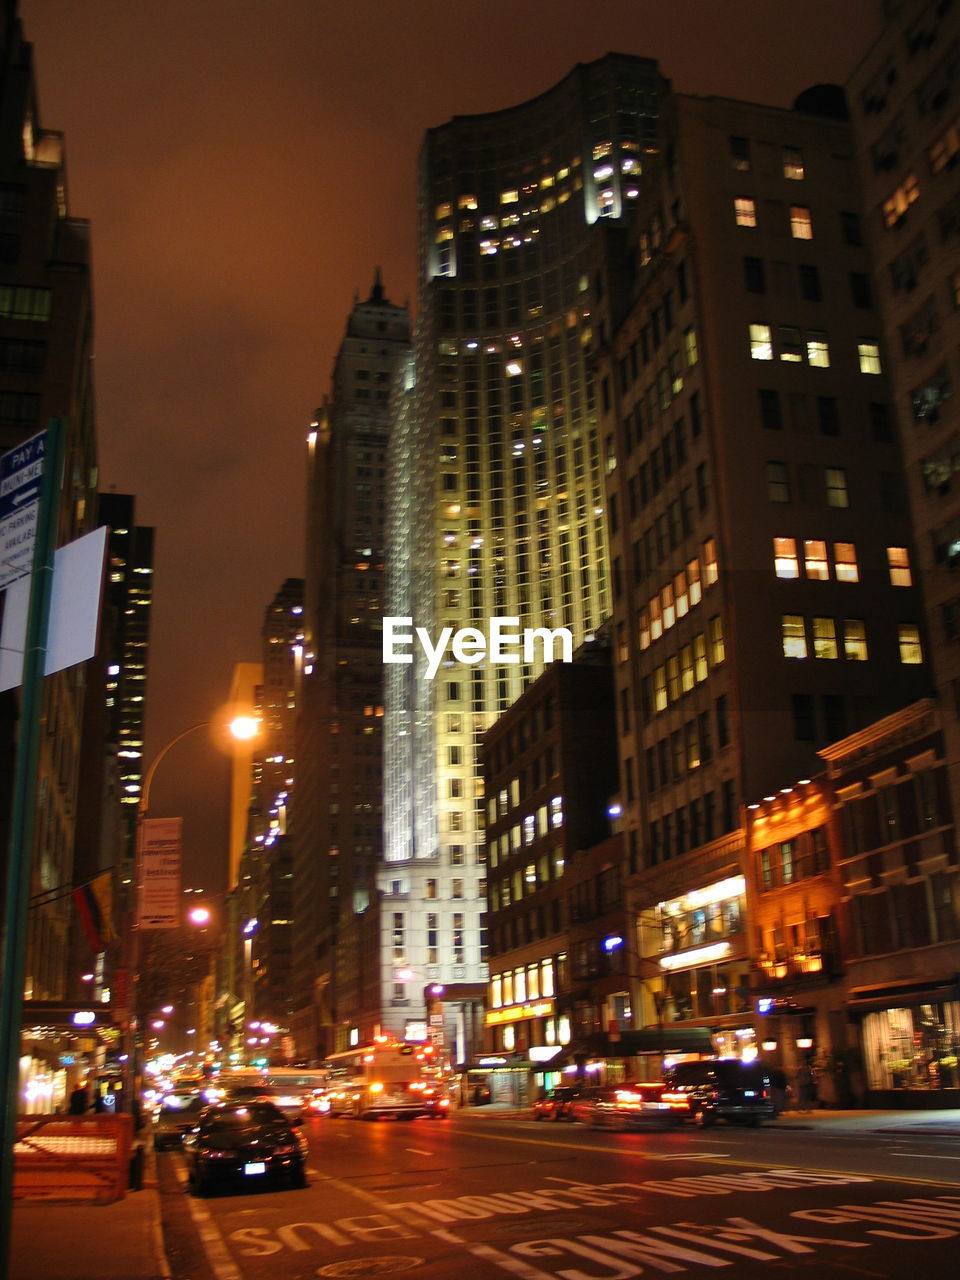 city, illuminated, architecture, night, building exterior, skyscraper, street, modern, built structure, cityscape, tall, road, no people, outdoors, sky